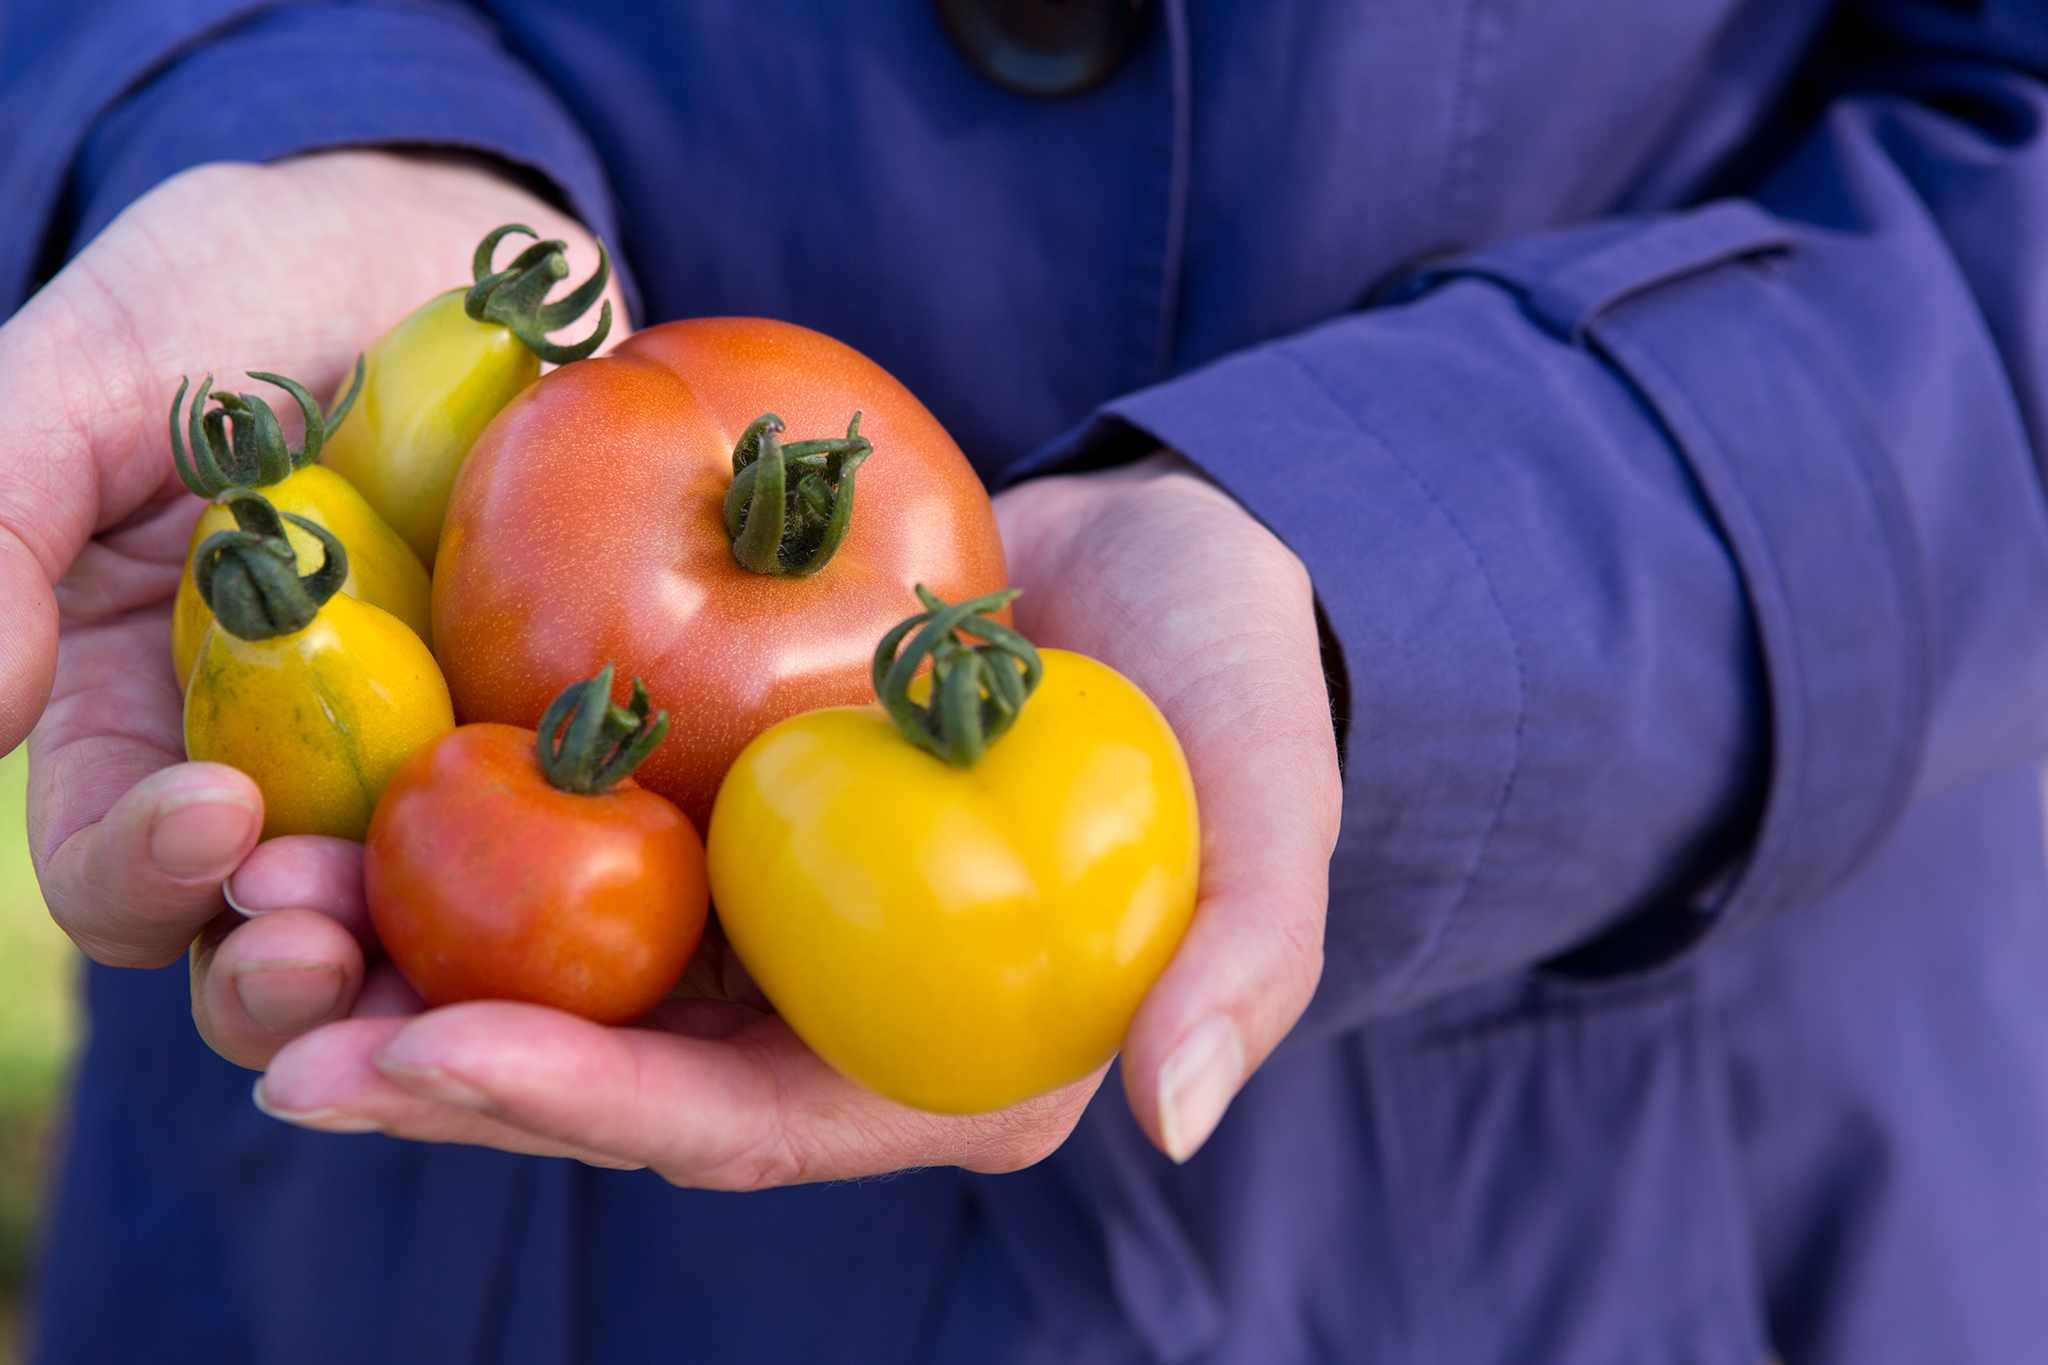 Hands holding a selection of harvested Tomatoes red and yellow varieties